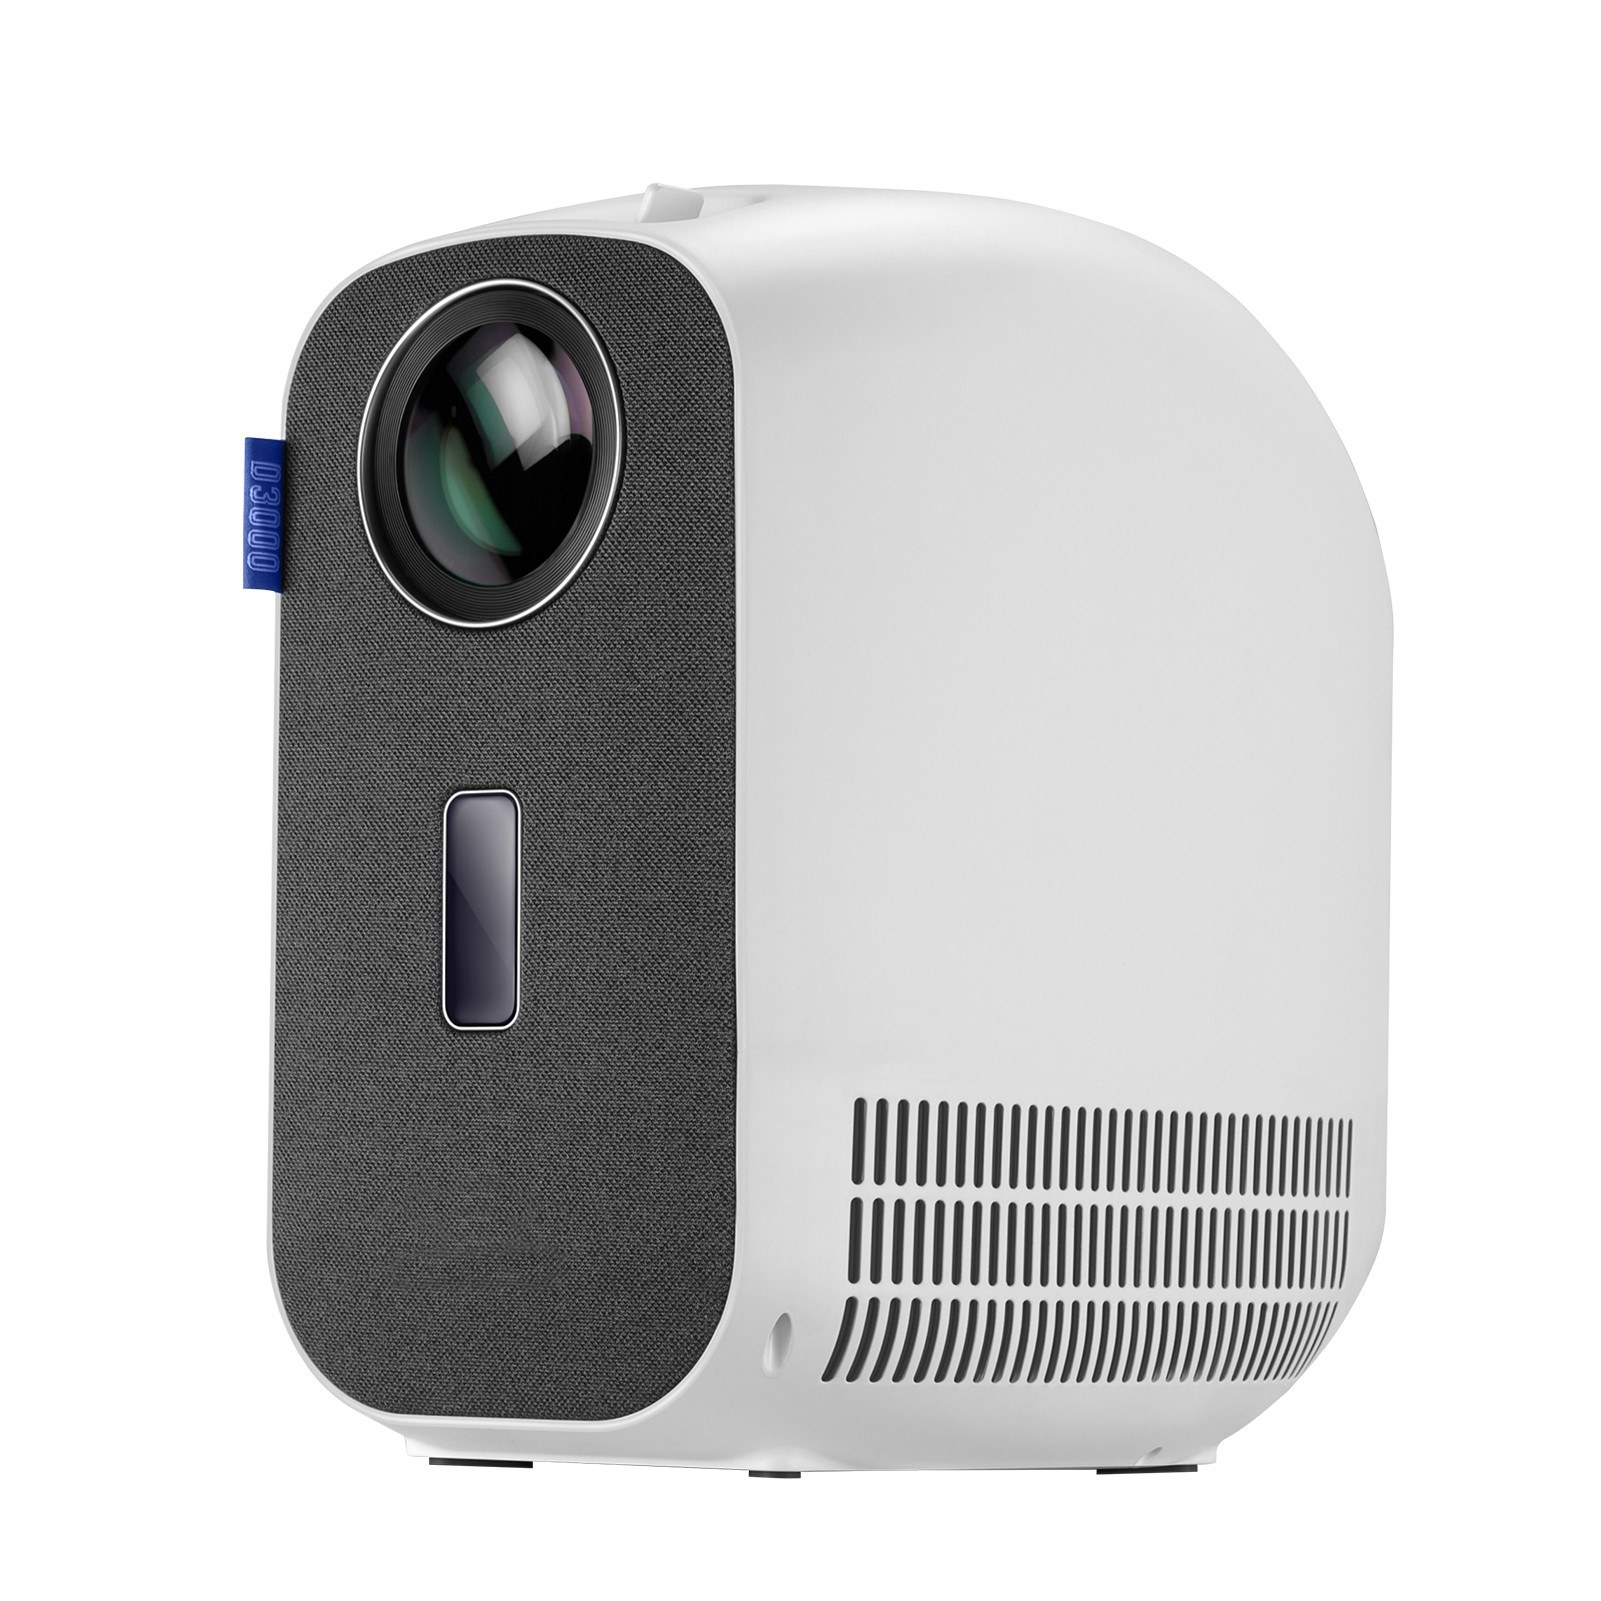 cafago.com - 60% OFF Aibecy Projector D3000 Full HD Video Projector,free shipping+$203.31